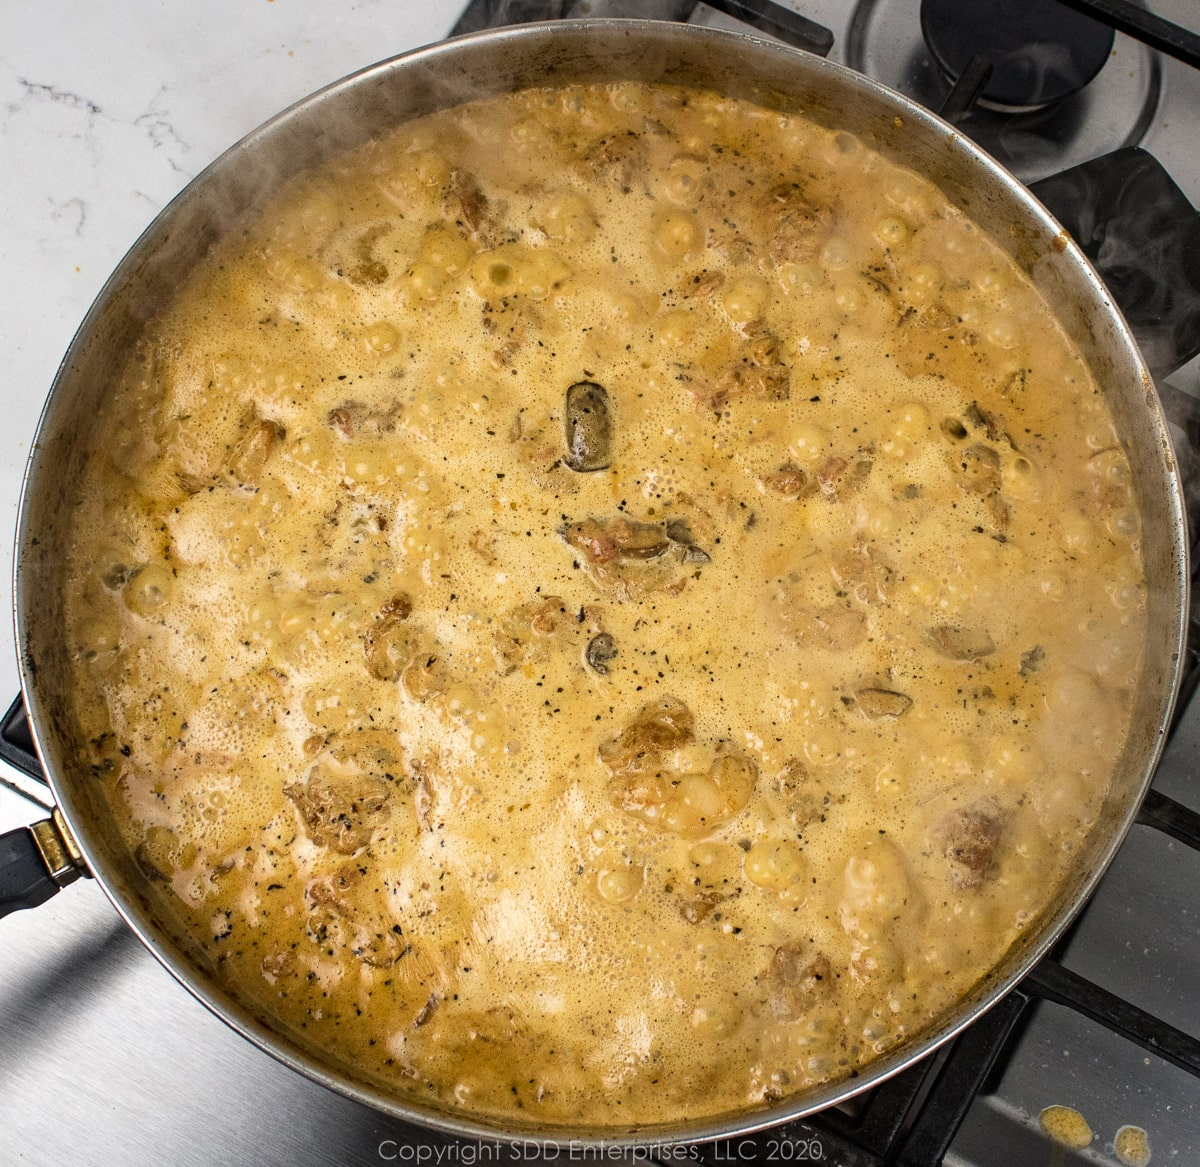 cream added to frying pan with mushroom, onions and tomatoes